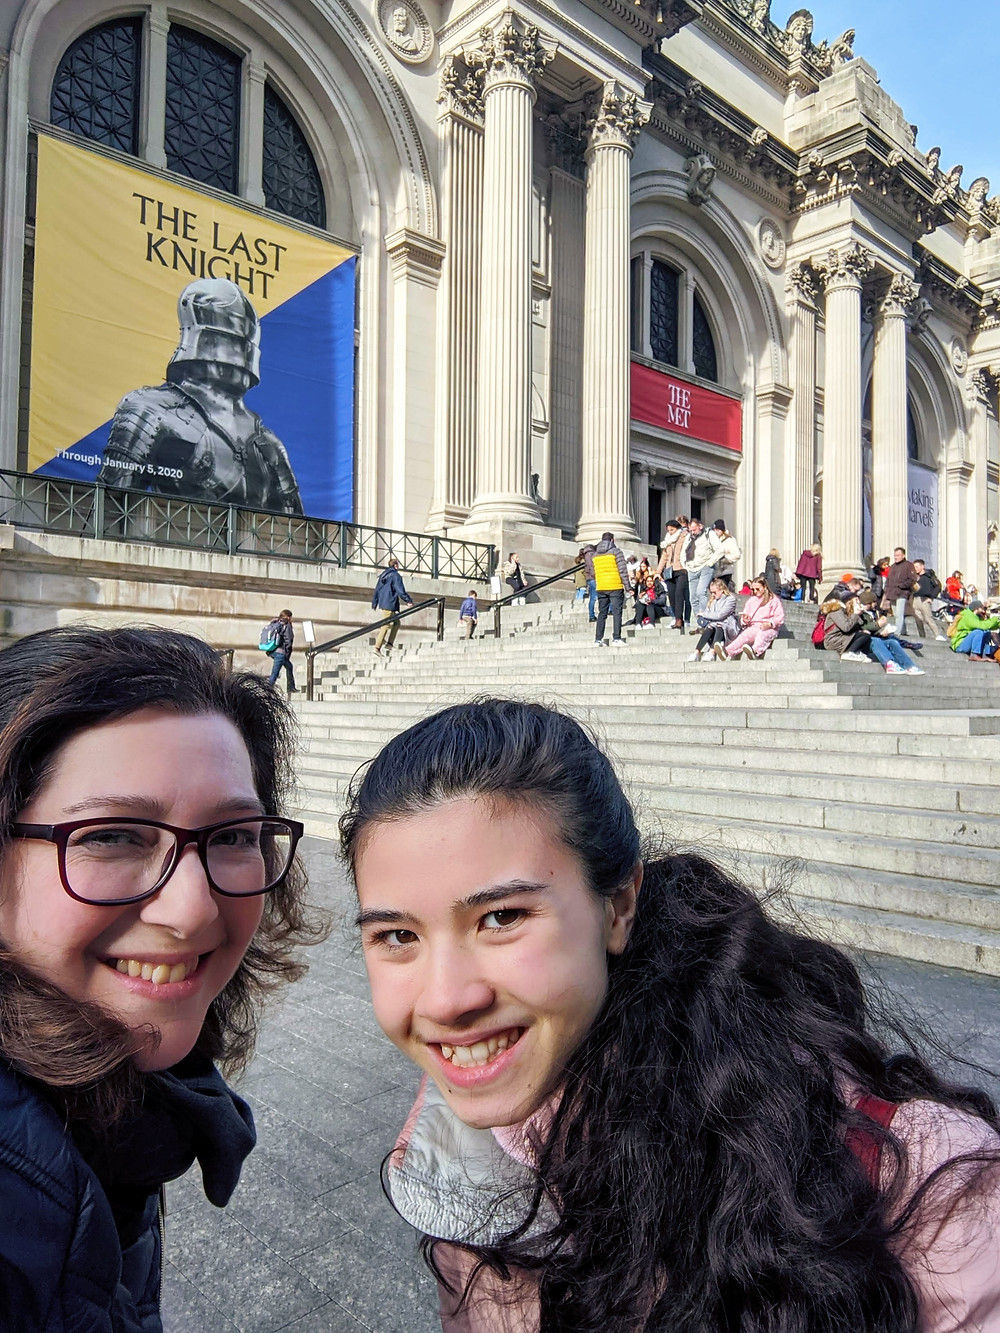 woman-with-glasses-and-teen-girl-pause-outside-of-The-Metropolitan-Museum-of-Art-in-background